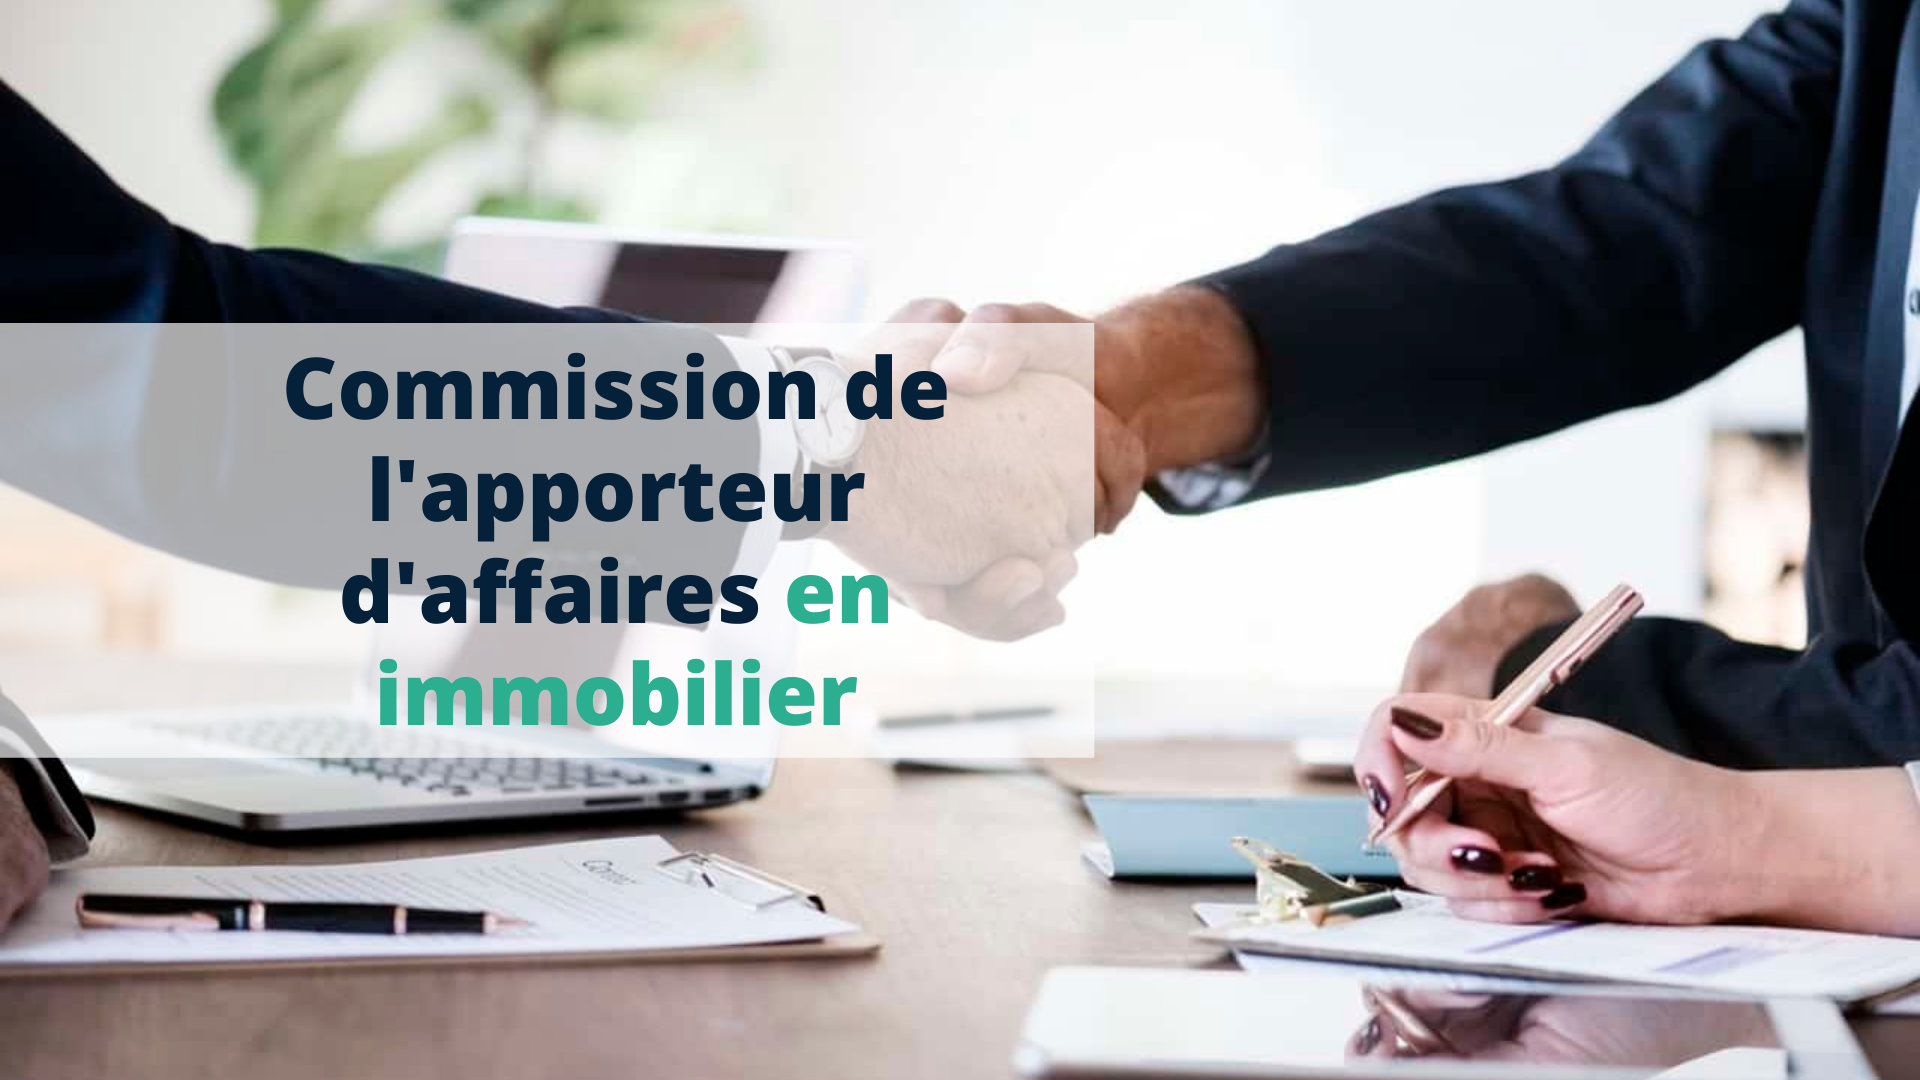 Commission de l'apporteur d'affaires en immobilier - Start Learning